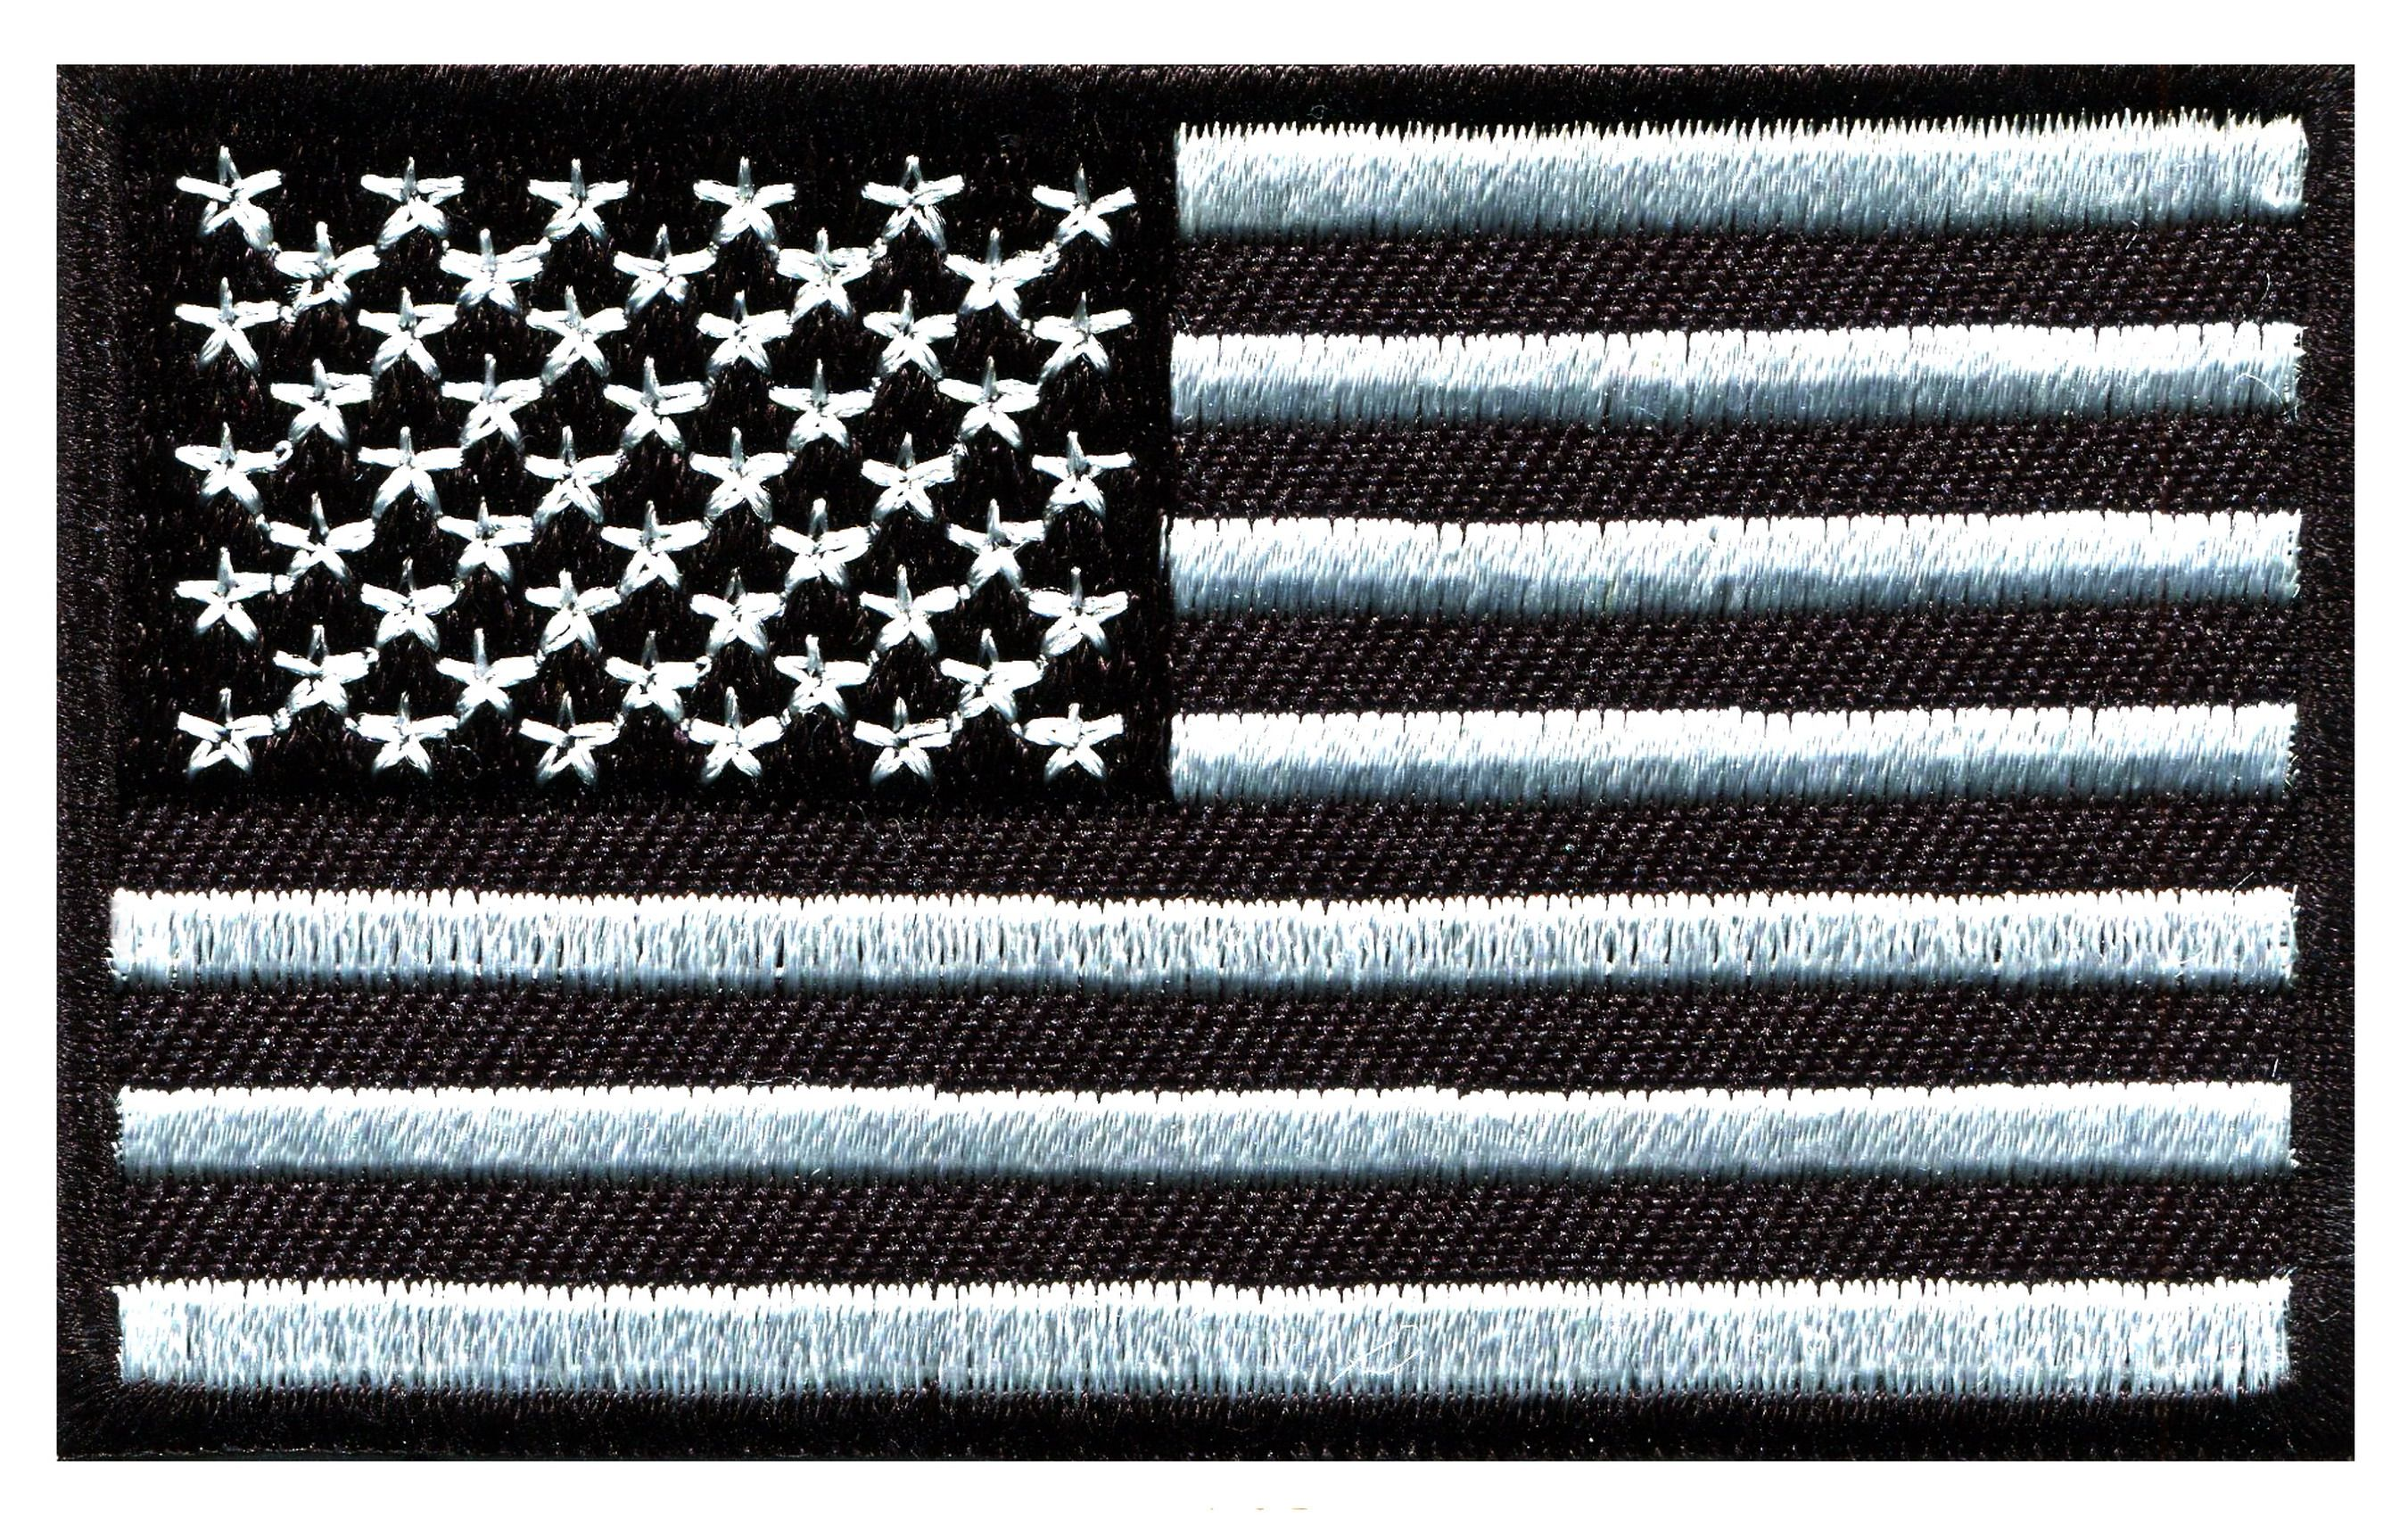 American Flag Usa United States Black Silver Embroidered Applique Iron On Patch S 1540 Ideal For Adorning Black American Flag American Flag Iron On Patches